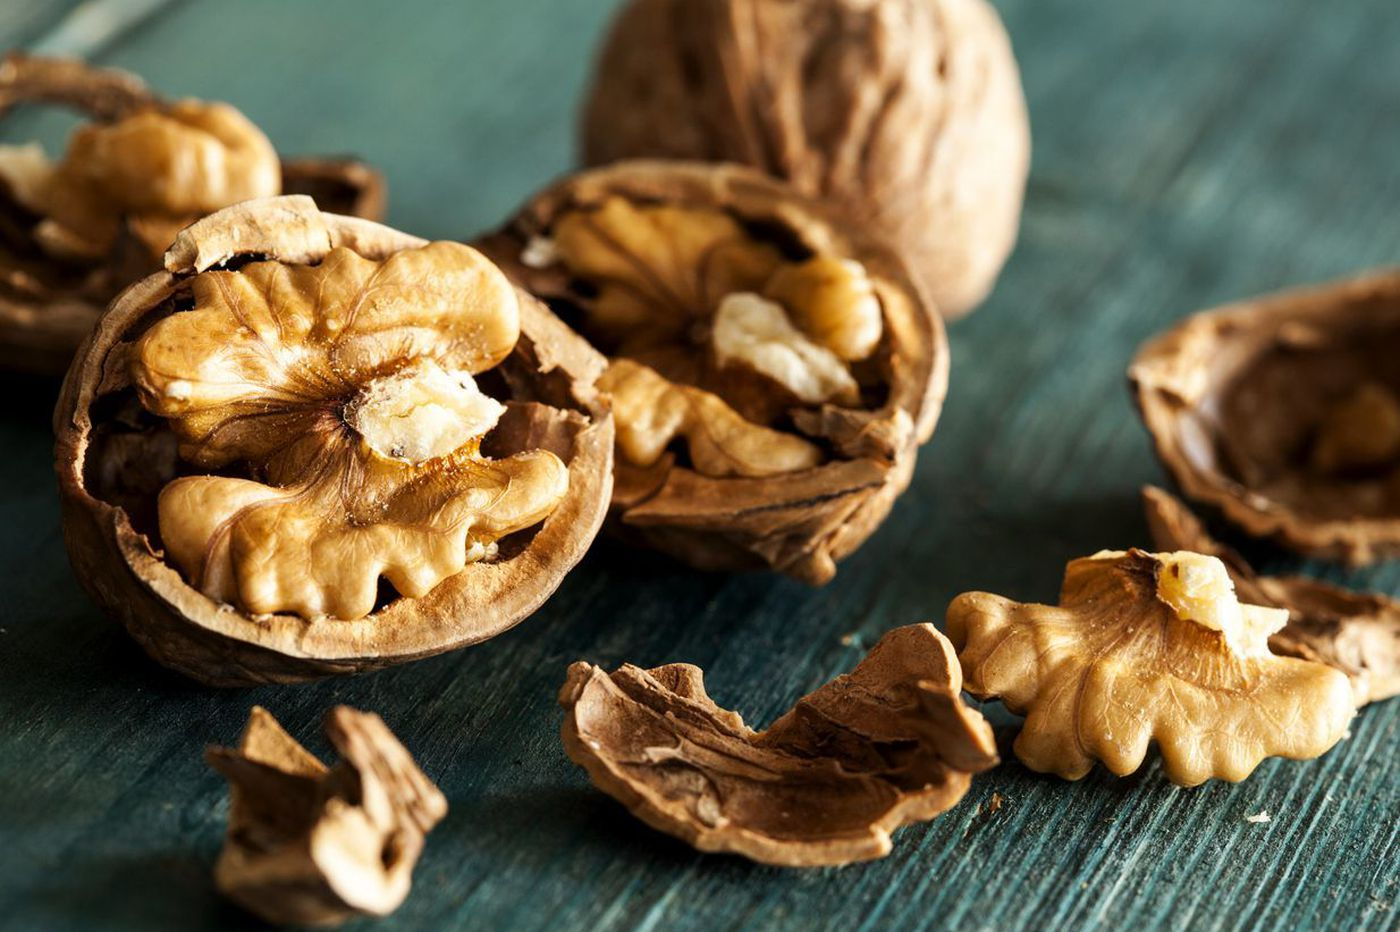 Walnuts may lower blood pressure, risk of heart disease, Penn State study finds